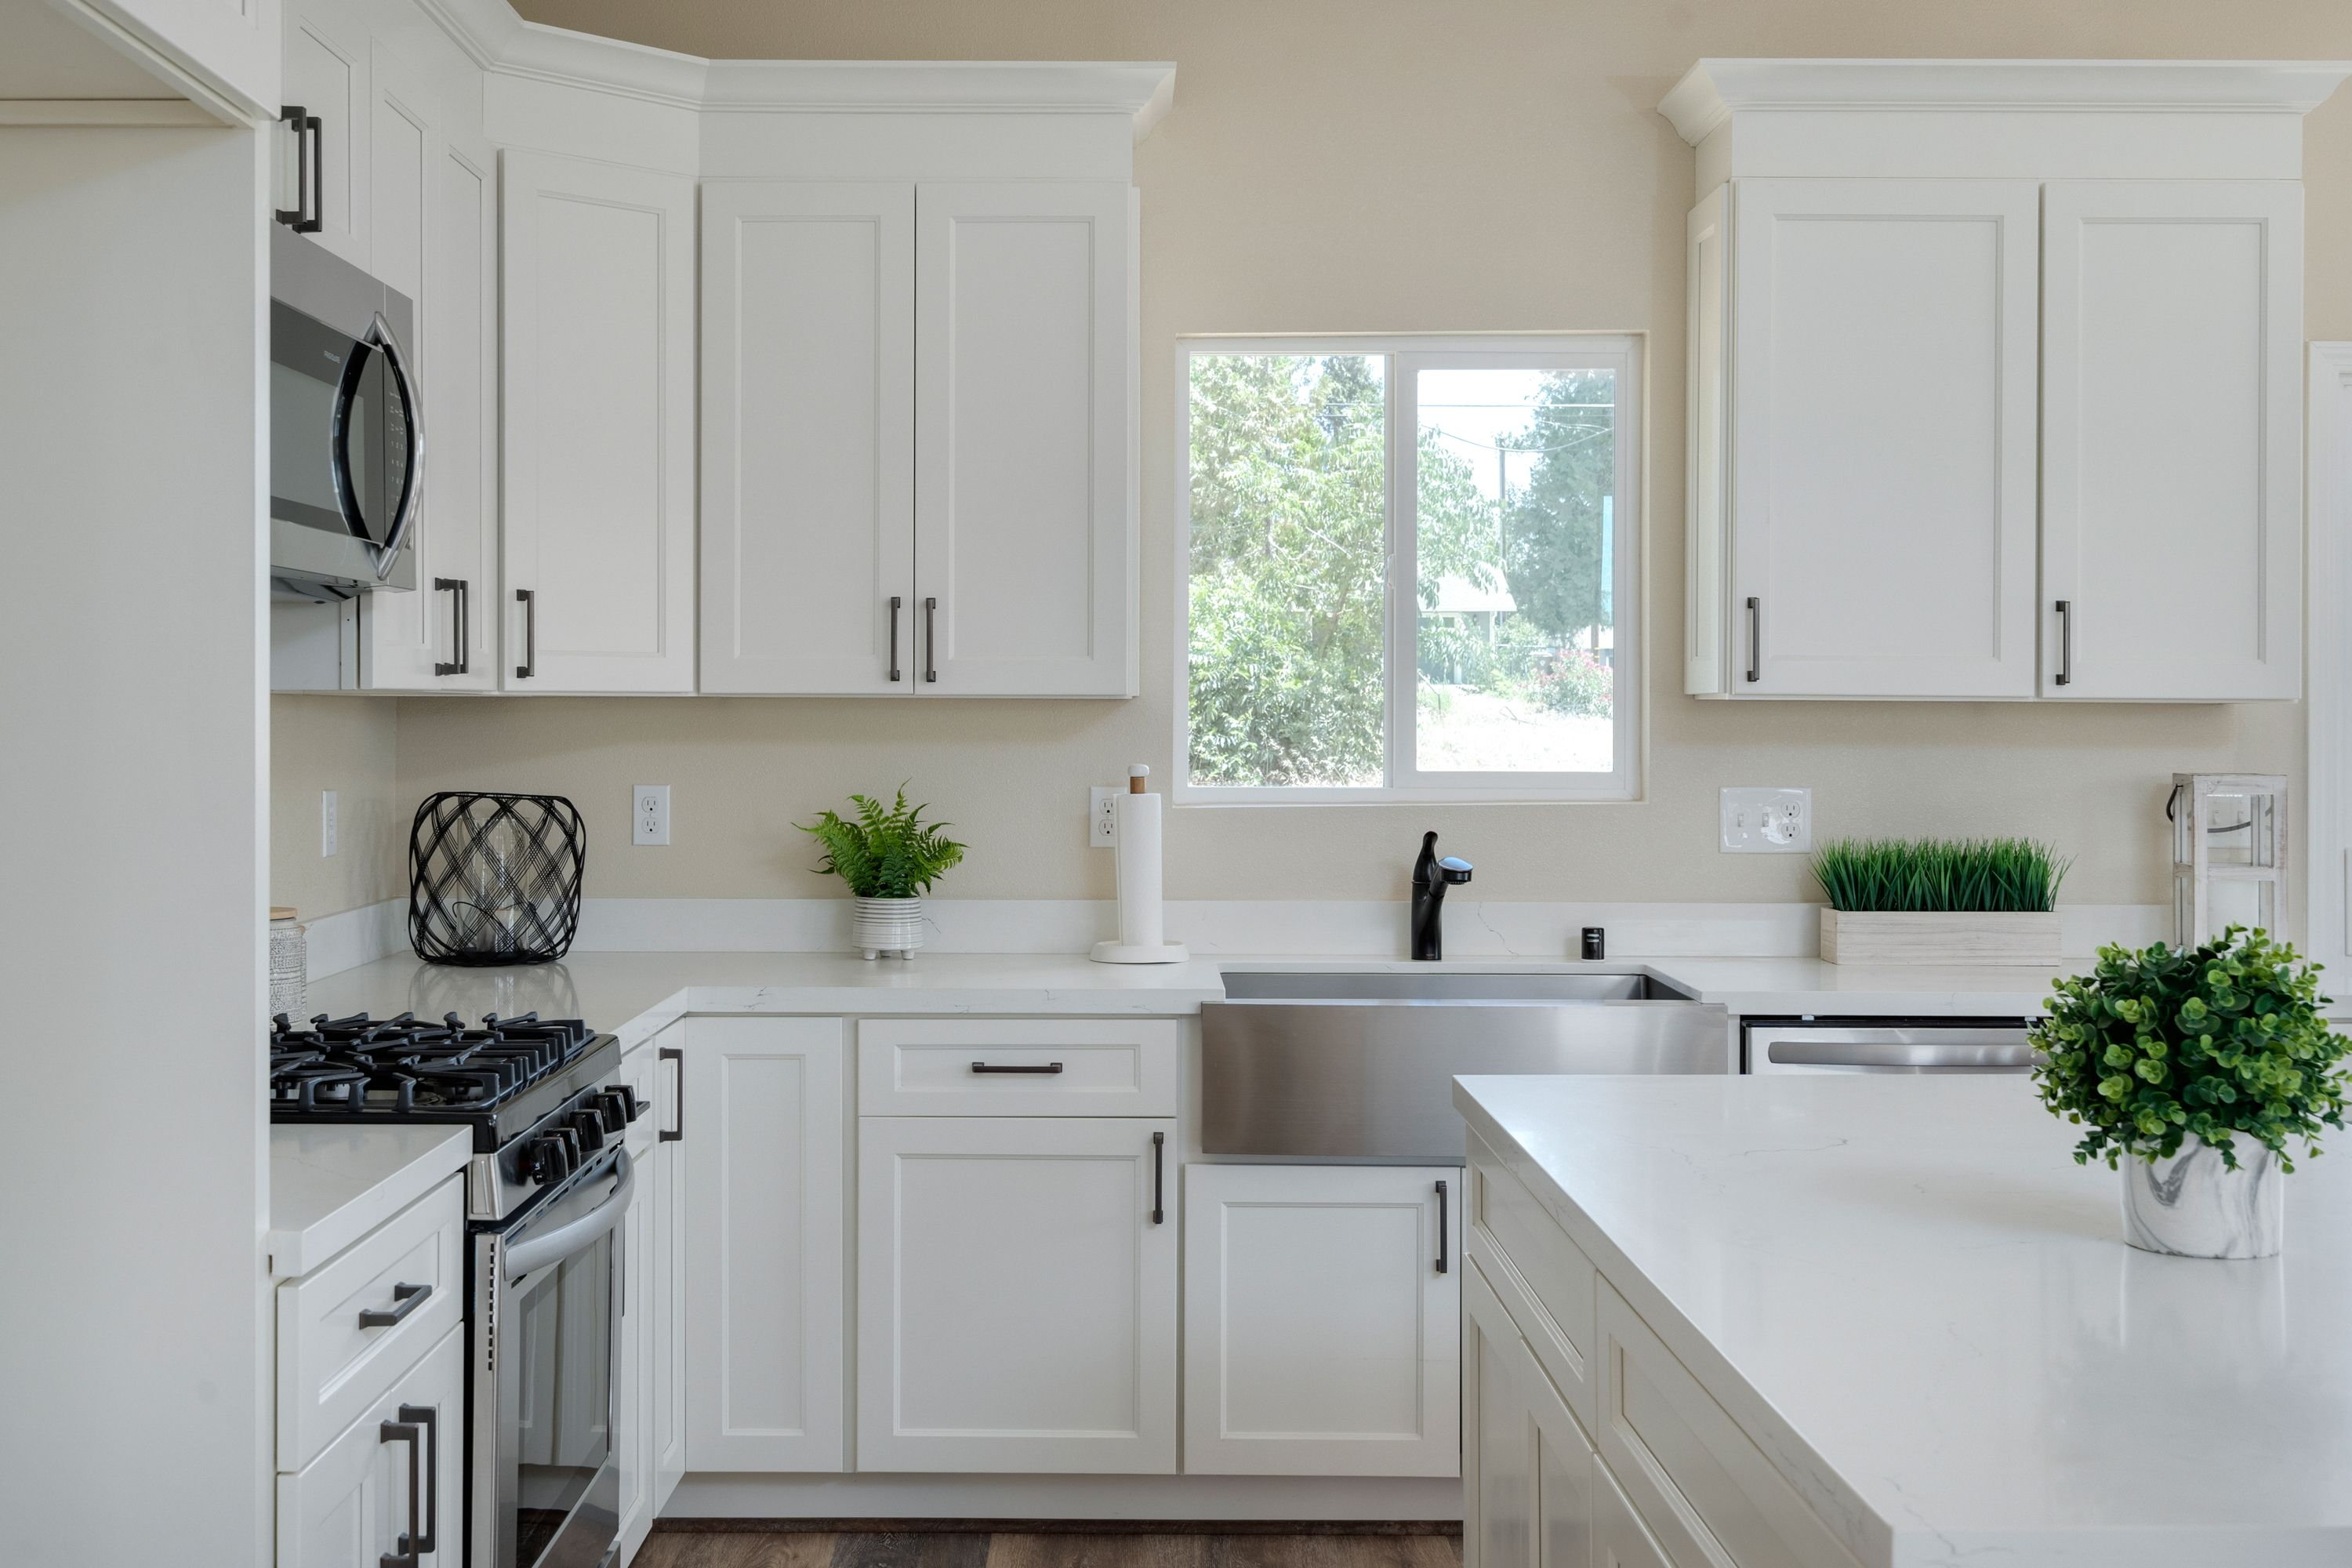 Kitchen featured in the 503 Crestwood Dr By Silvermark Luxury Homes in Chico, CA